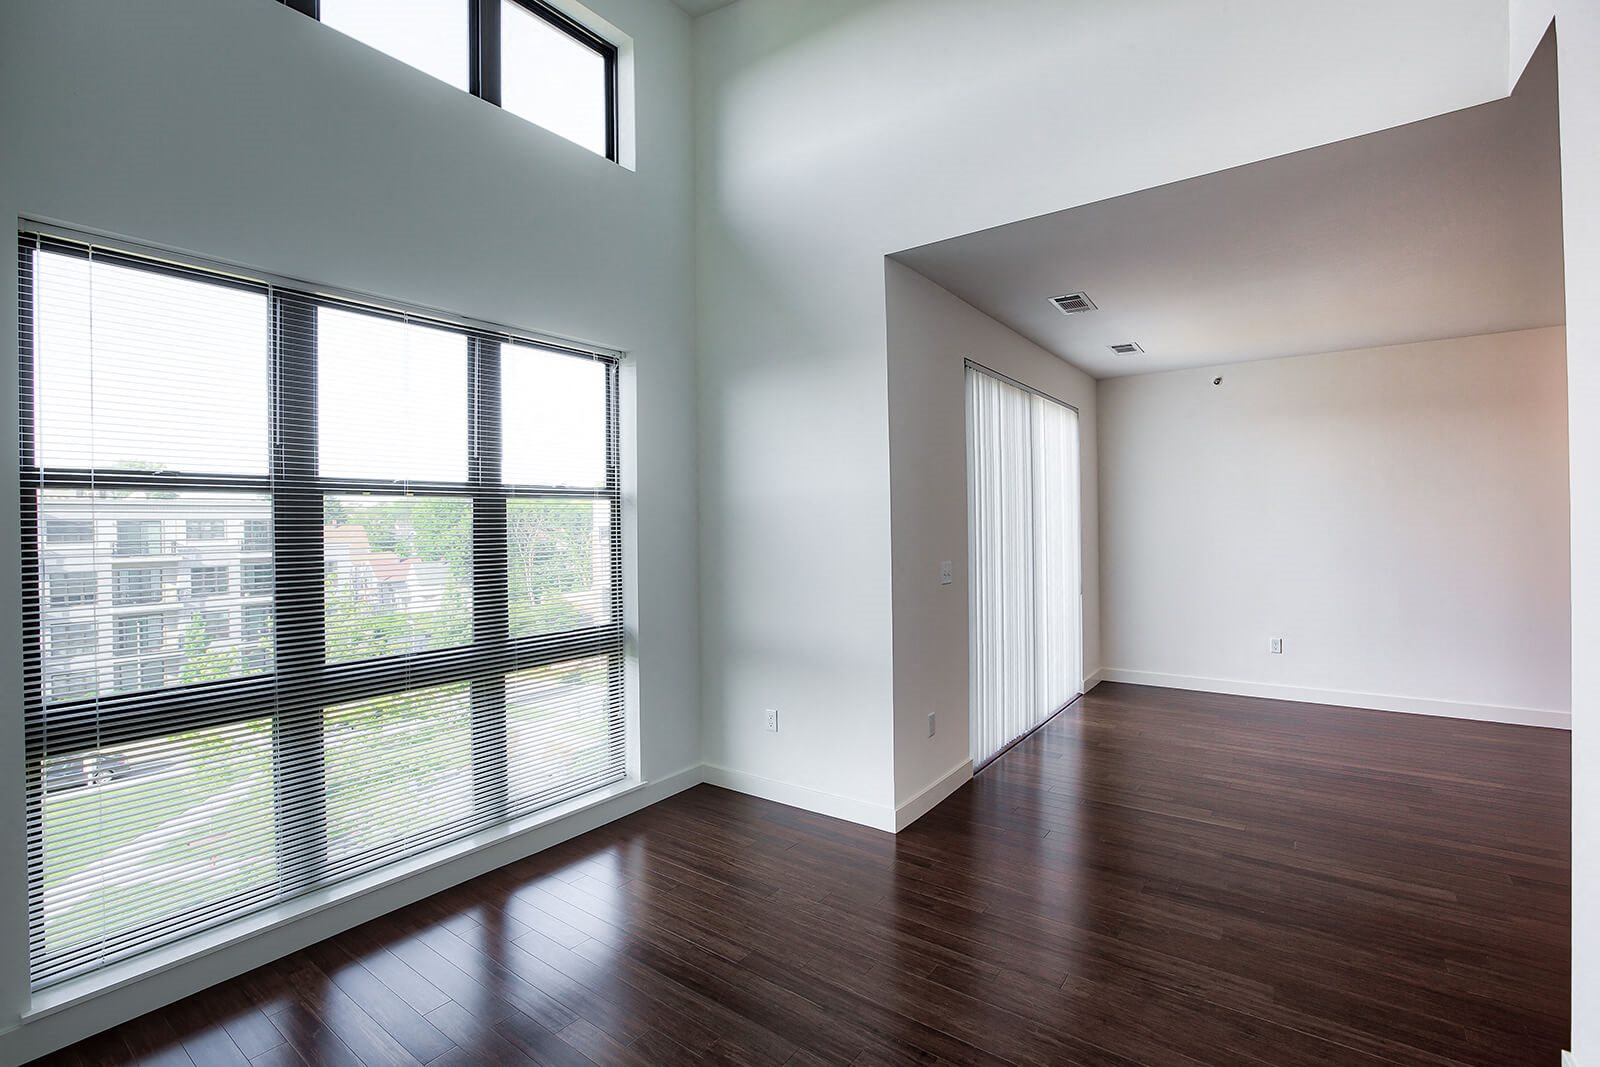 Floor-To-Ceiling Windows at Windsor at Maxwells Green, Somerville, MA